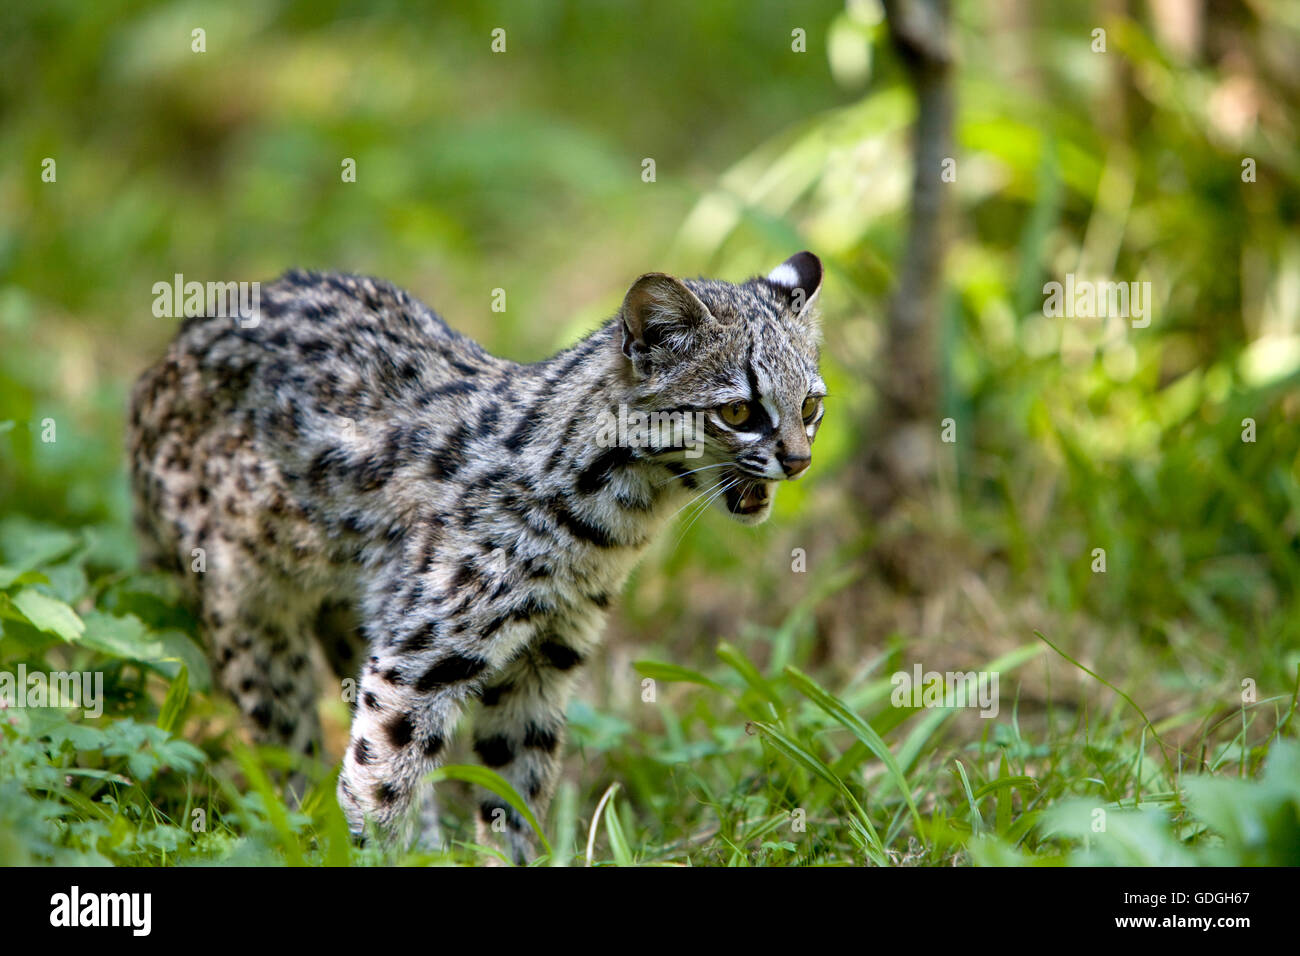 Tiger Cat or Oncilla, leopardus tigrinus, Snarling - Stock Image